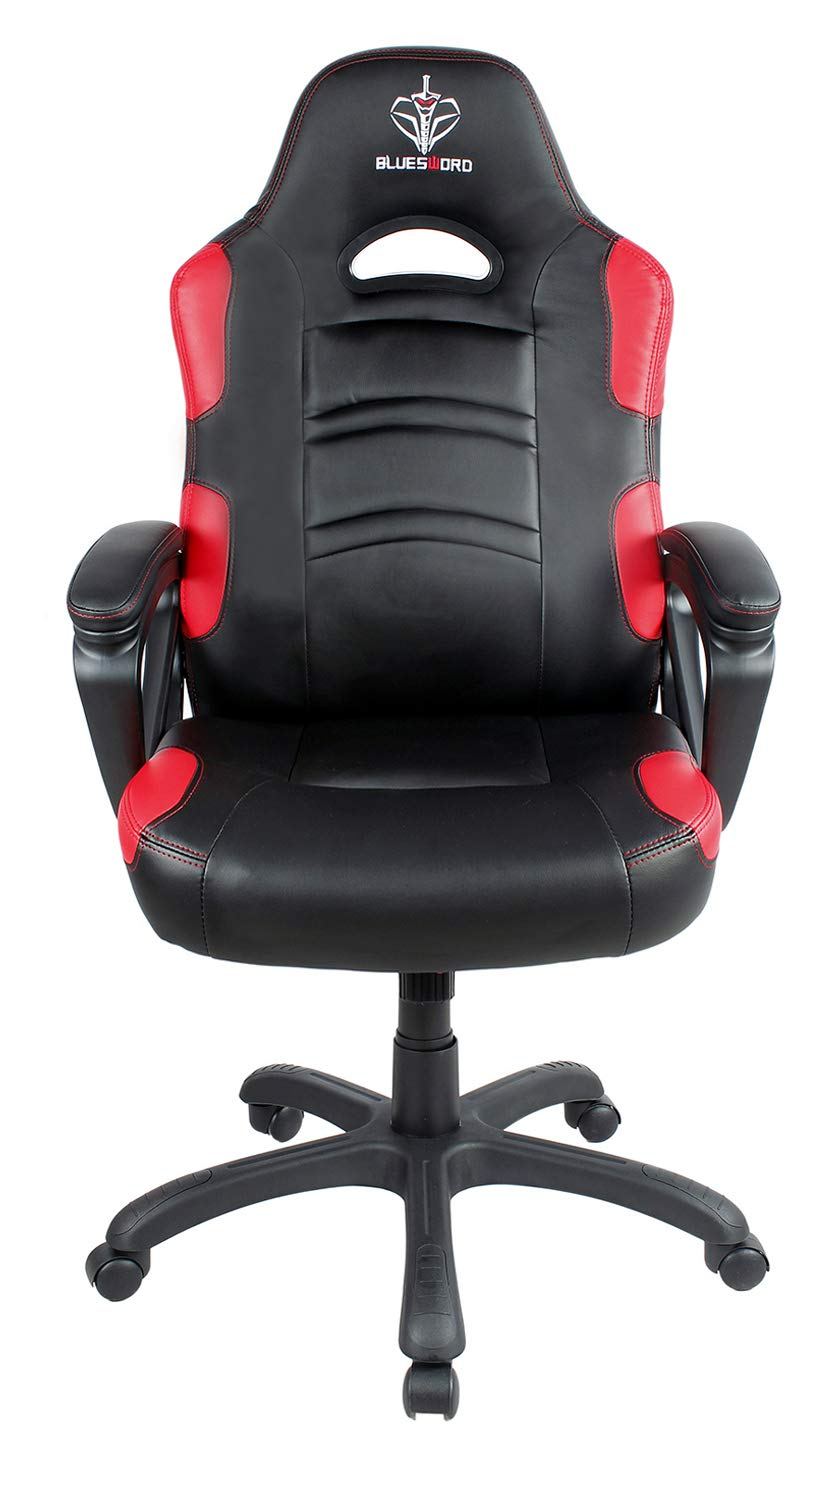 BLUE SWORD Gaming Chair, Racing Car Style Gaming Chair with Large Bucket Seat, Computer Chair with Tilting and Swivel Function, Leatherette, Red by BLUE SWORD